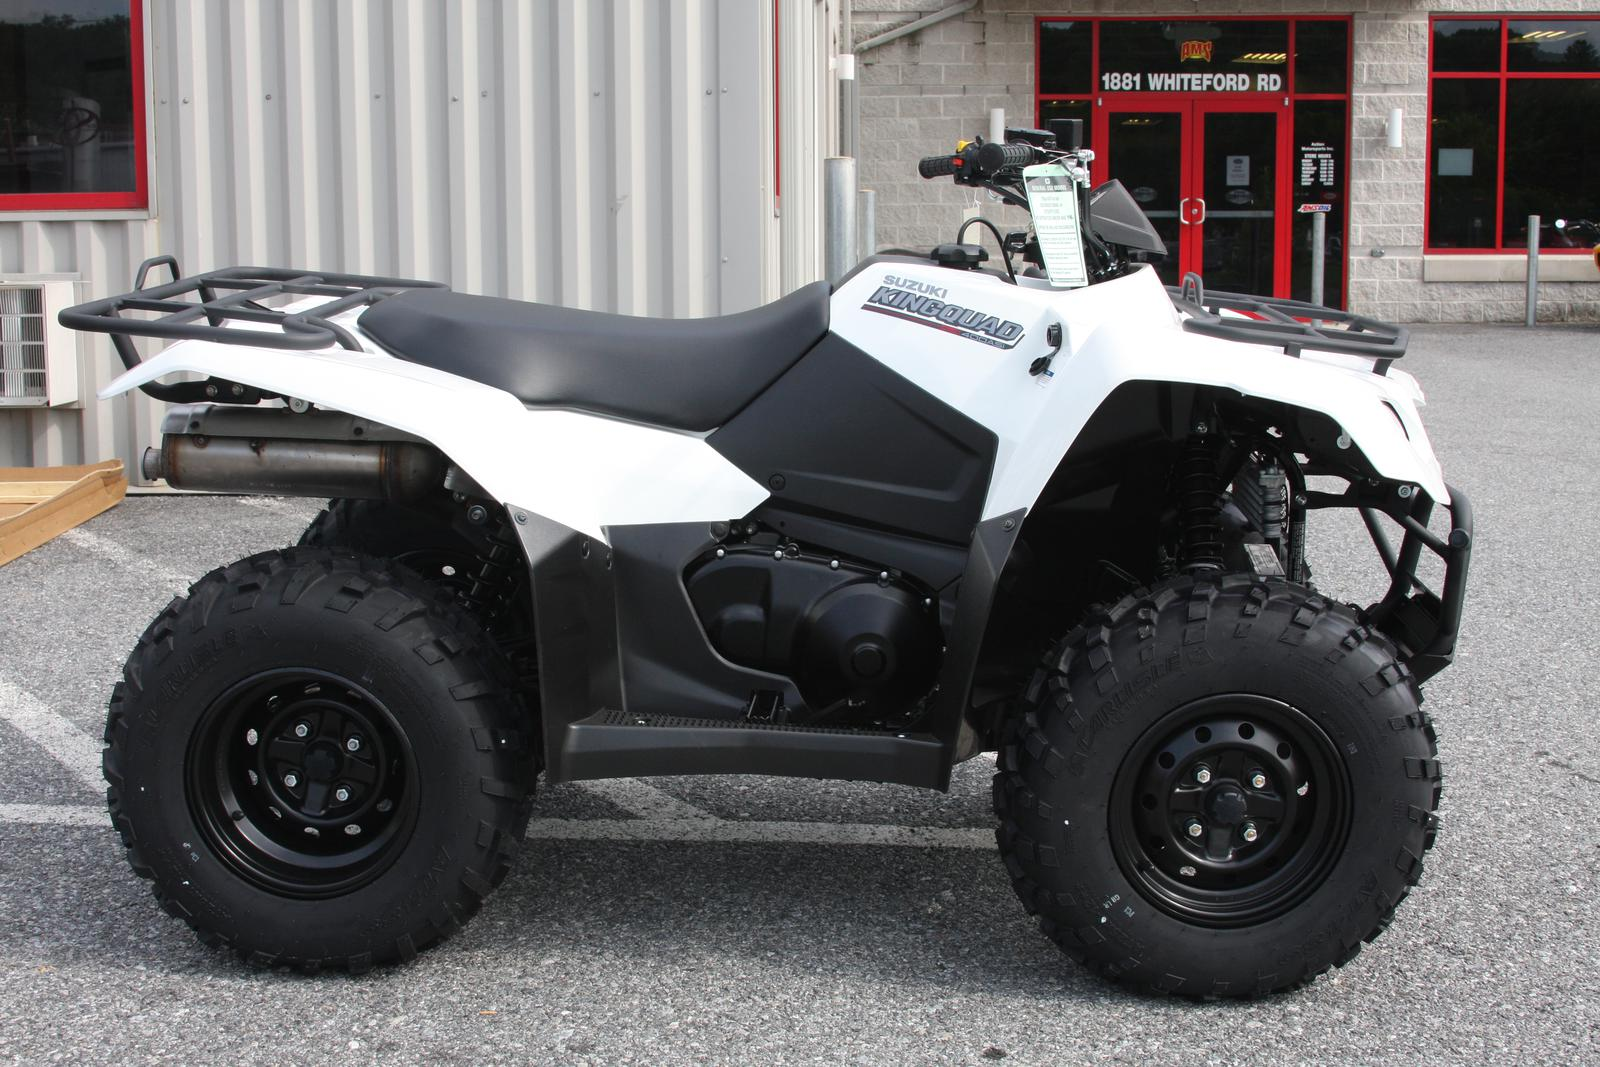 2018 Suzuki KINGQUAD 500AXI EPS for sale in YORK, PA | AMS Action